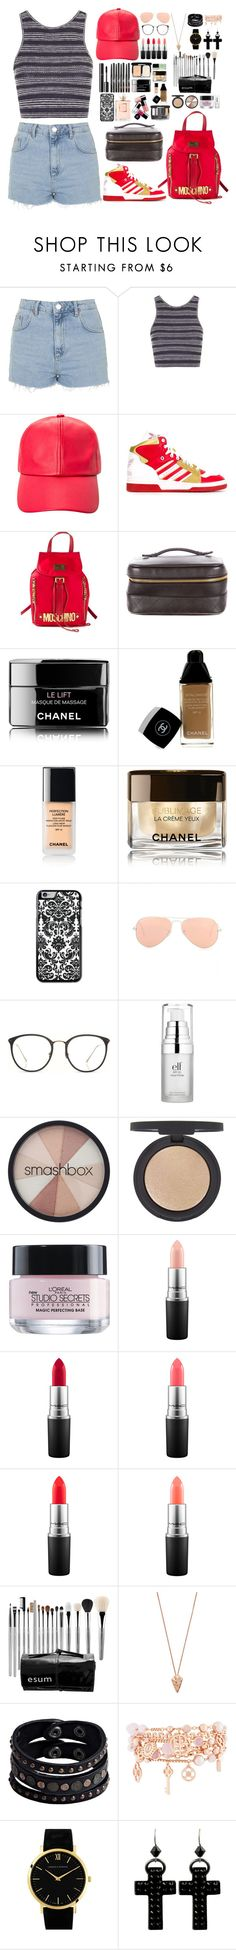 """""""I'm going out"""" by qaaspirin ❤ liked on Polyvore featuring Topshop, Ashley Stewart, adidas Originals, Moschino, Chanel, Lumière, Ray-Ban, Linda Farrow, Smashbox and L'Oréal Paris"""